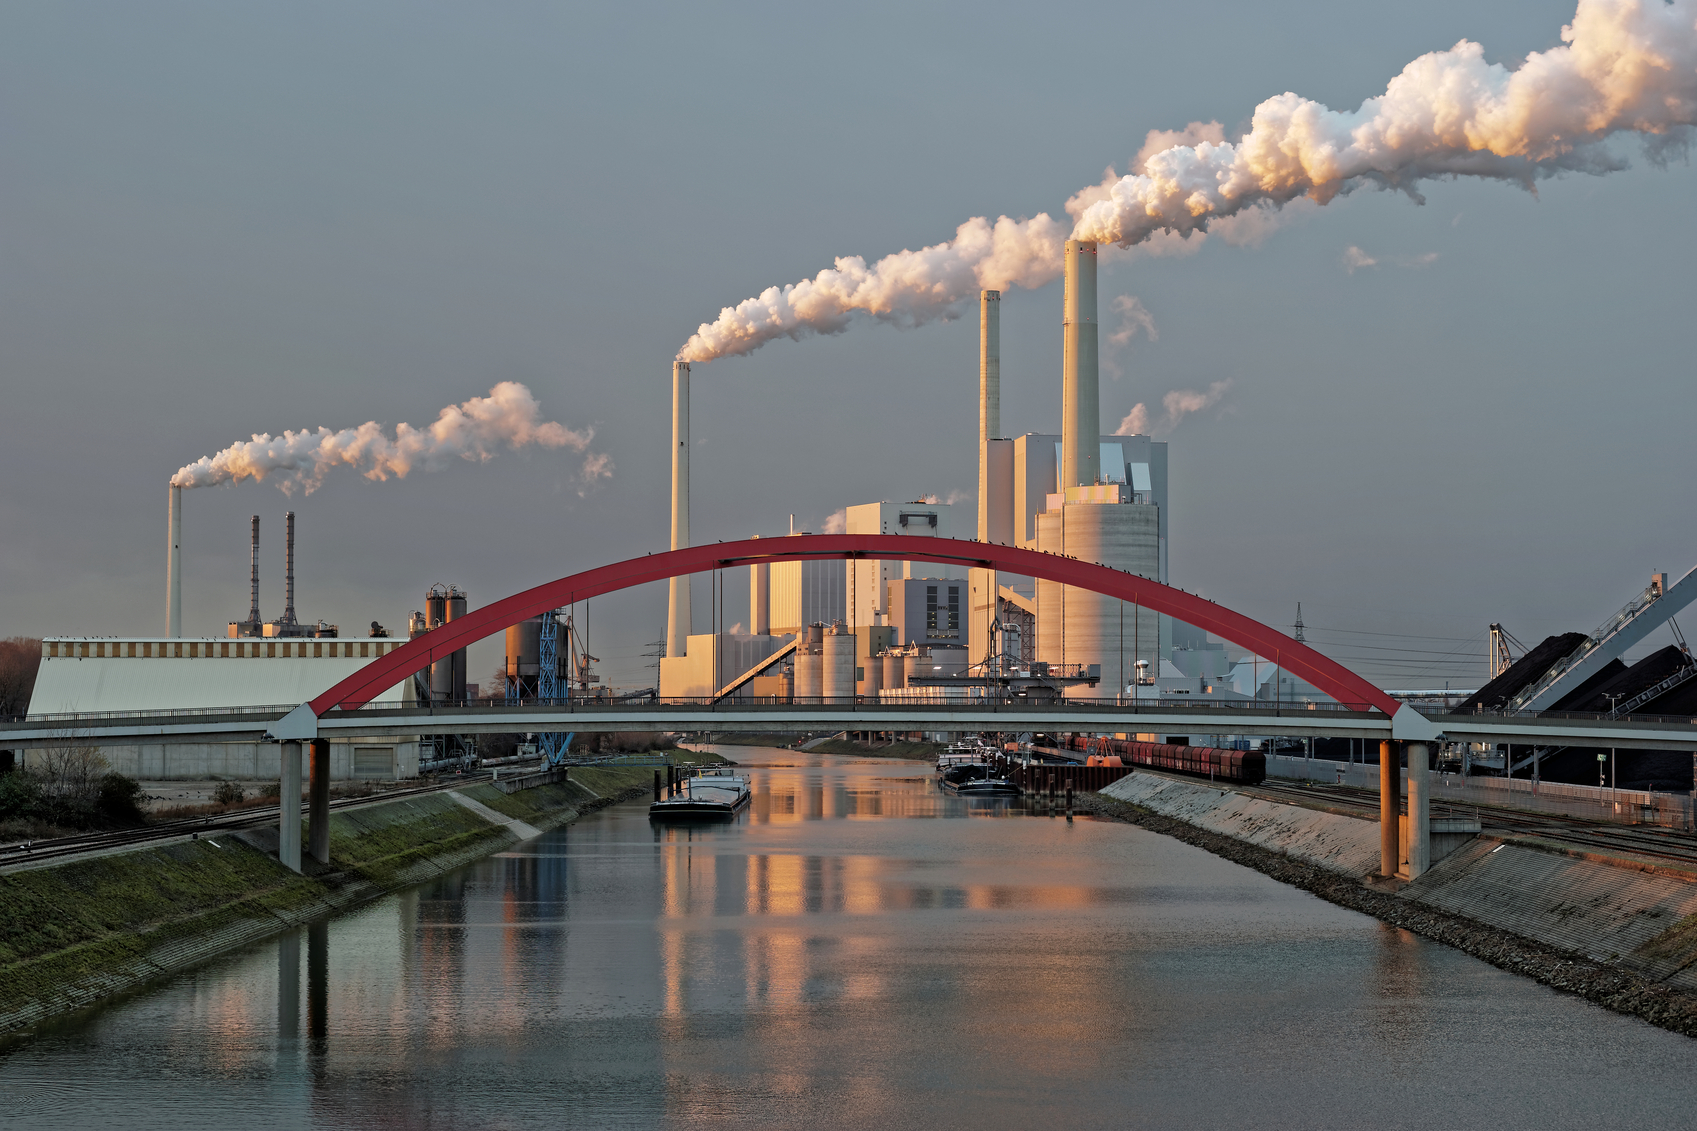 Coal-fired power plant at the shore of the Rhine as seen from a footbridge in Mannheim in Germany.